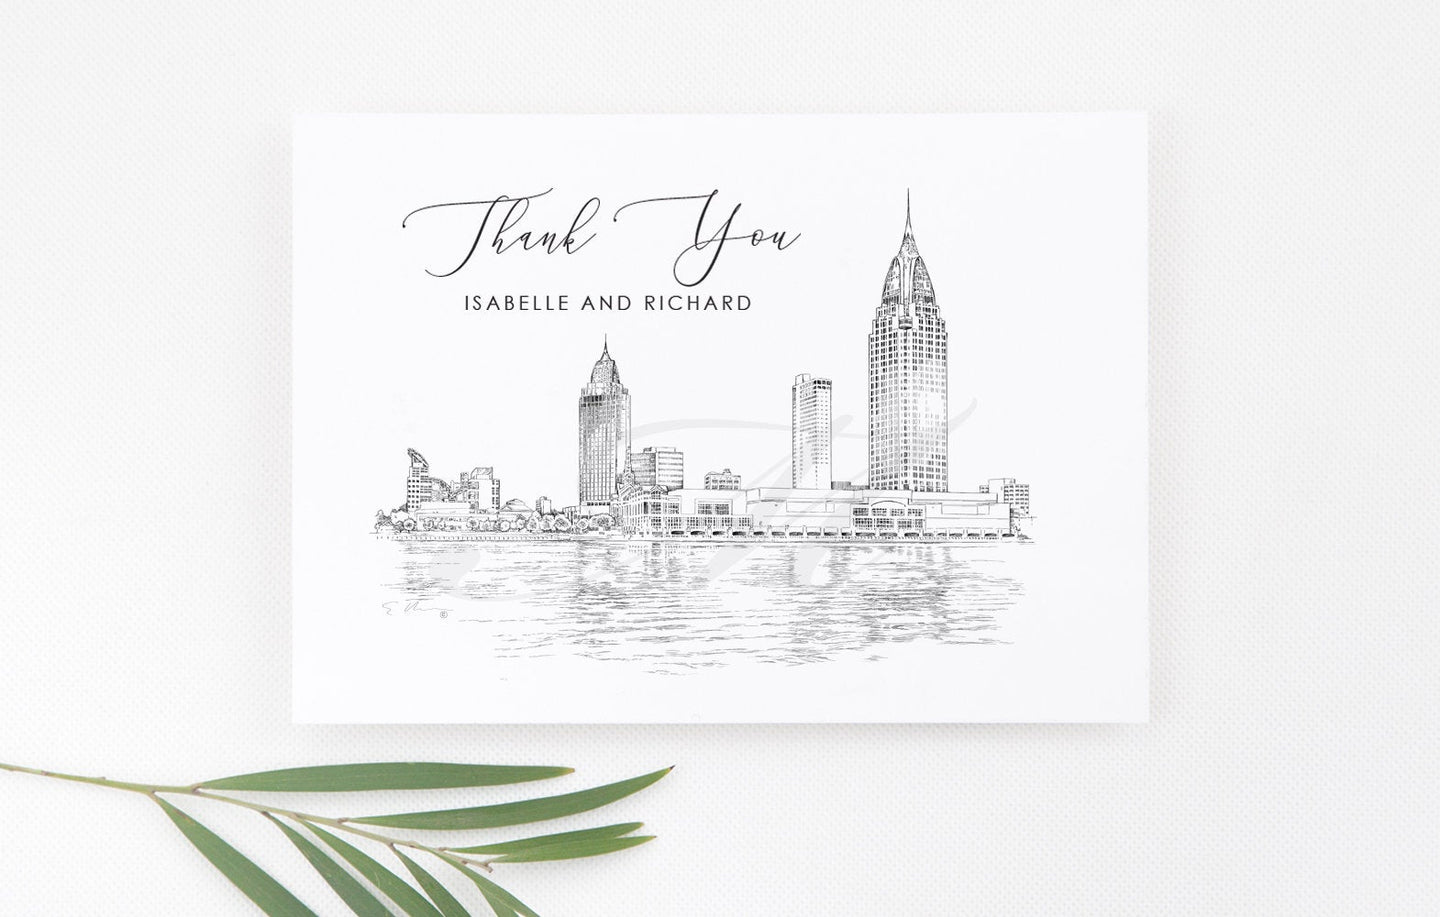 Mobile, AL Skyline Thank You Cards, Personal Note Cards, Bridal, Real Estate Agent, Corporate Thank you Cards, Alabama (set of 25 cards)